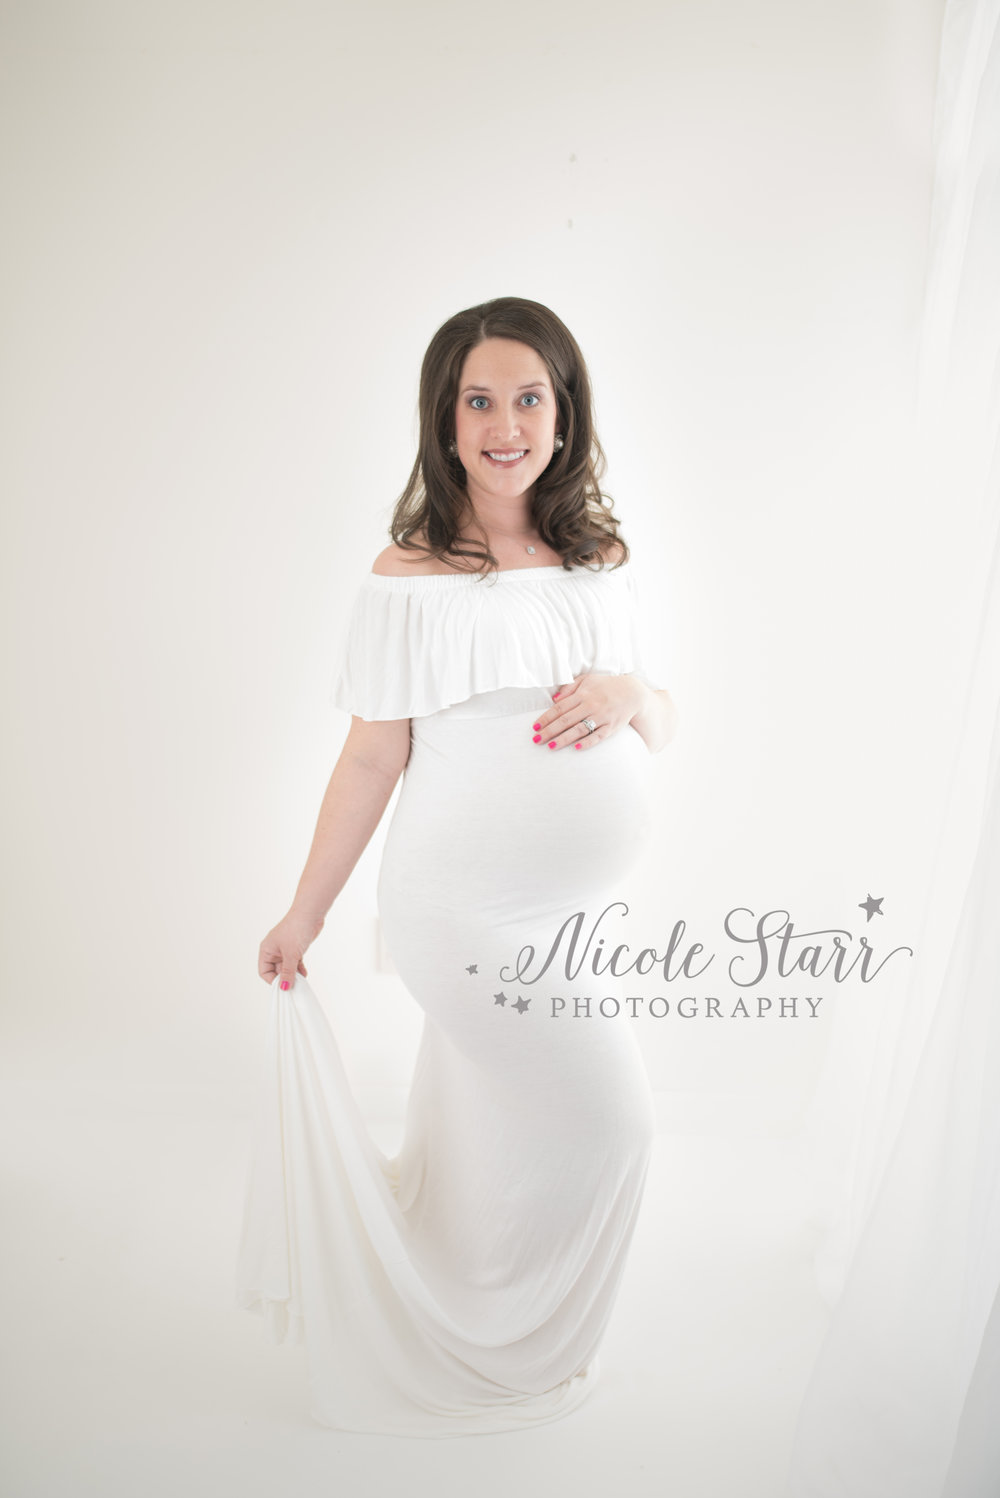 Nicole Starr Photography | Saratoga Springs Maternity Photographer | Boston Maternity Photographer | Upstate NY Maternity Photographer | Maternity Photographer | Maternity session | Maternity dress | Delmar NY Maternity Photographer | Loudonville Maternity Photographer | client wardrobe, what to wear to your maternity session, outfits for newborn moms, photoshoot outfits